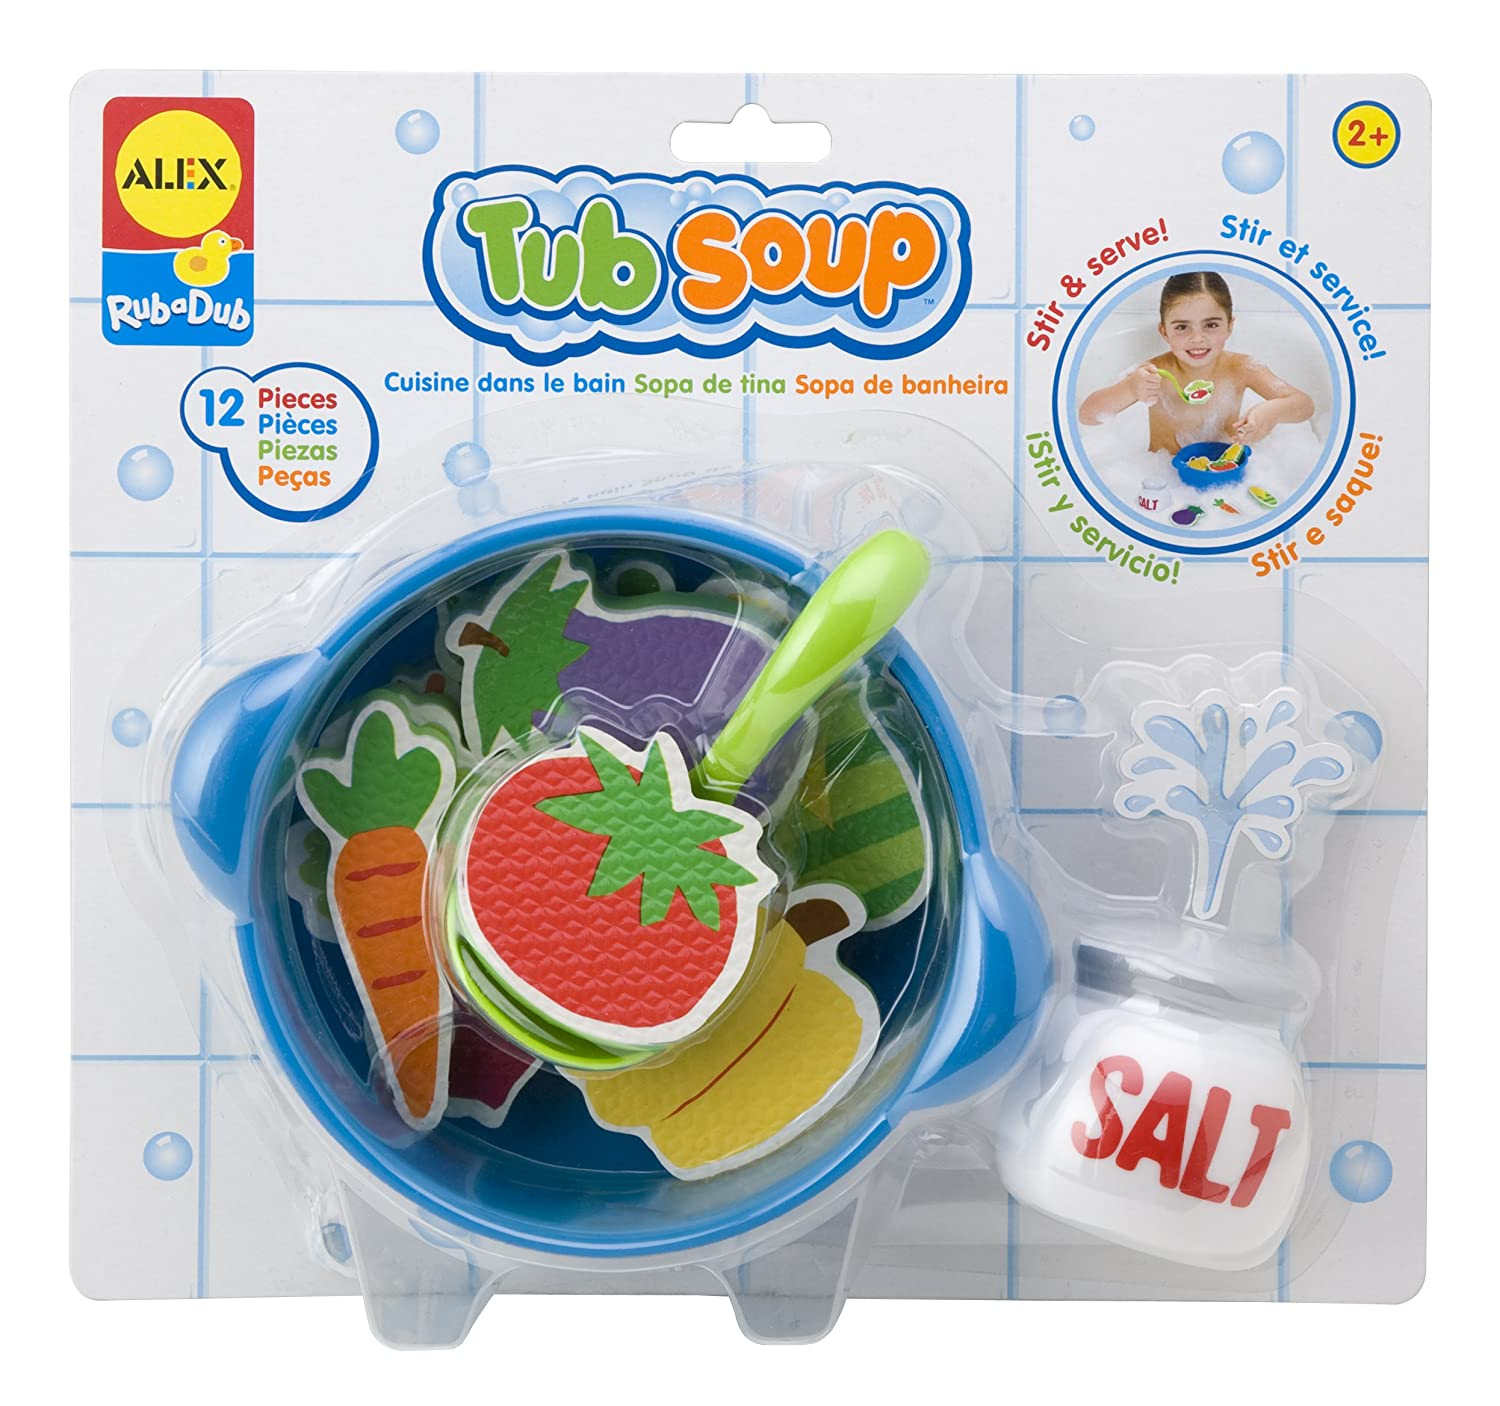 Alex Toys Rub a Dub Tub Soup 801W